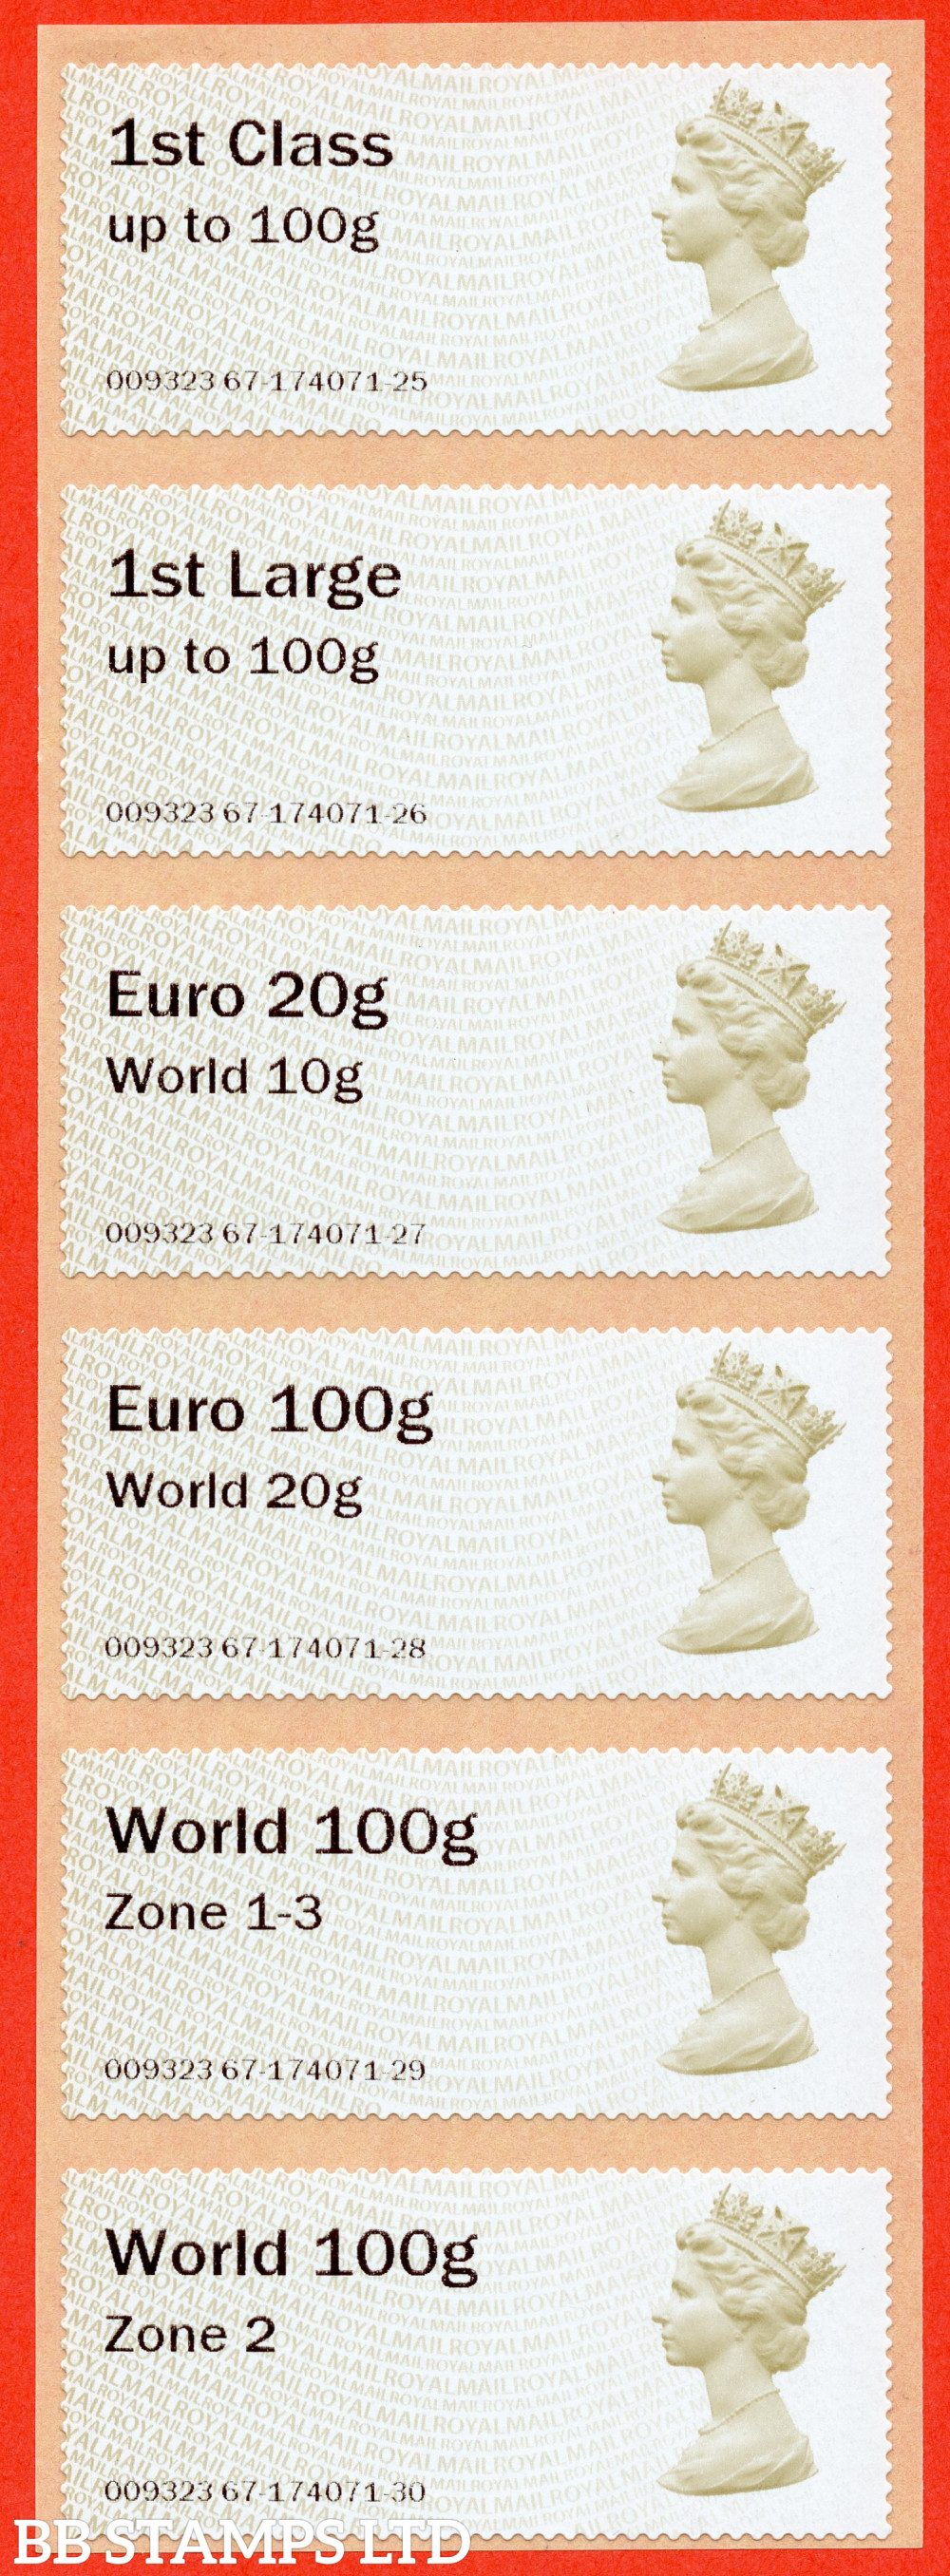 Machin (TIIA), set of 6 with 01/09/20 new overseas stamps: 1st/1stL/Euro 20g World 10g, and 3 new values: Euro 100g World 20g, World 100g Zone 1-3 and World Zone 2: with MA15 year code (BK31 P7)